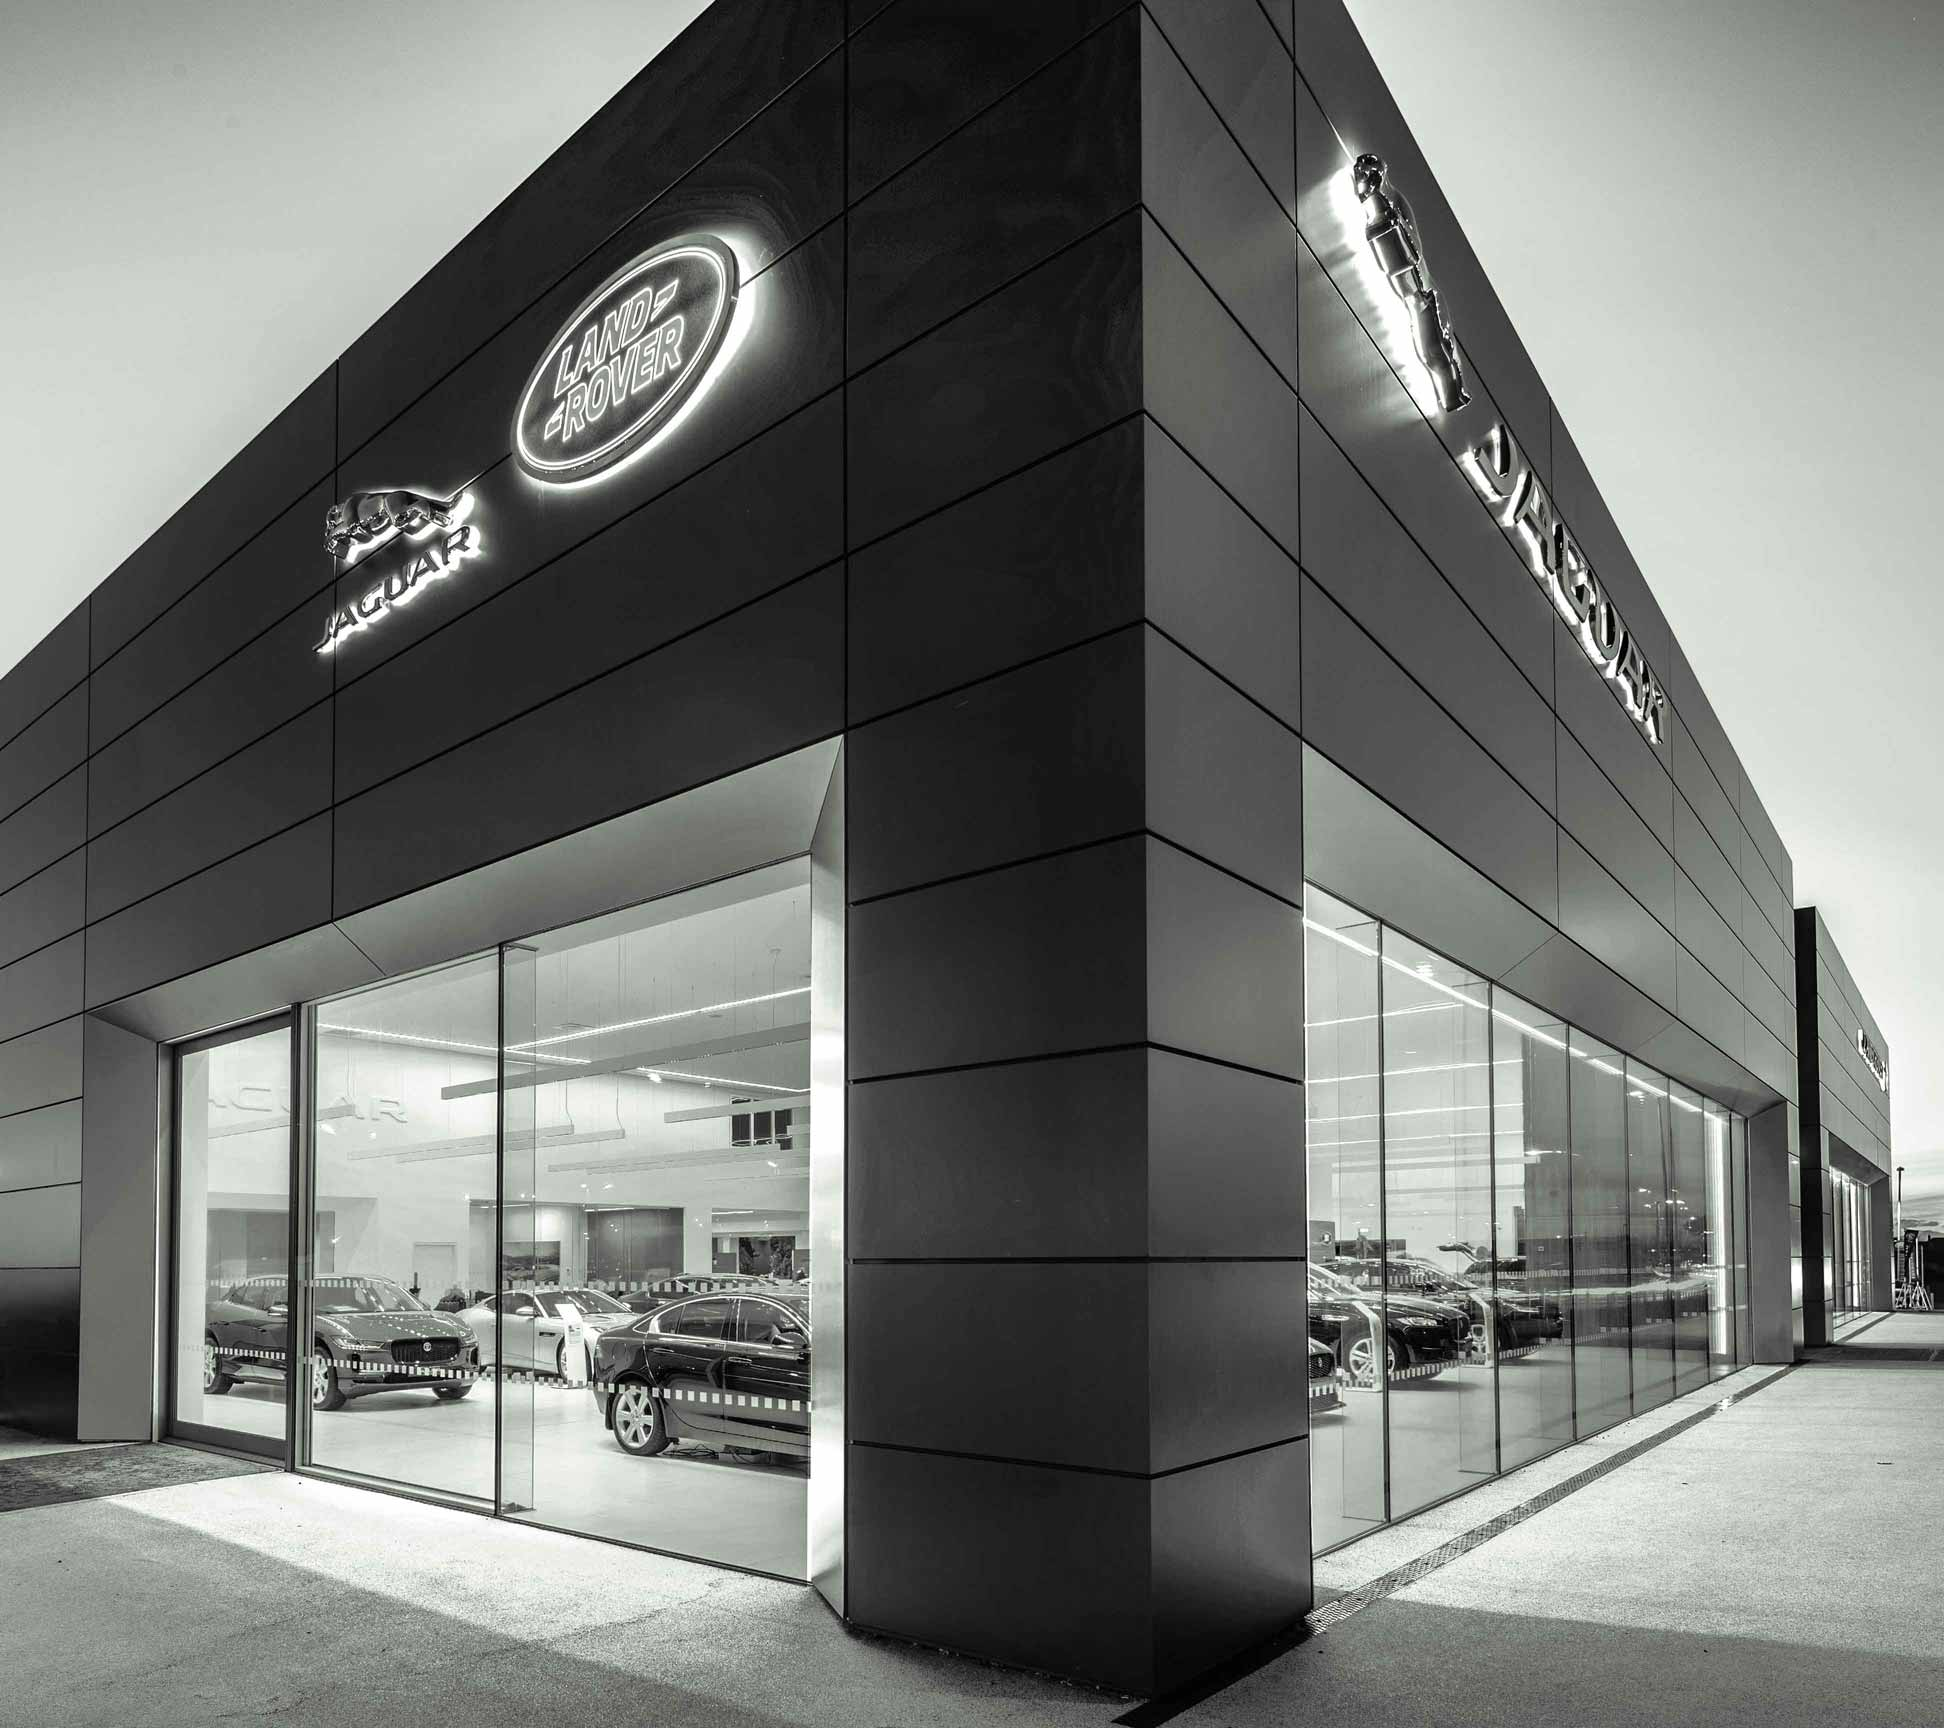 Parks Motor Group Glasgow